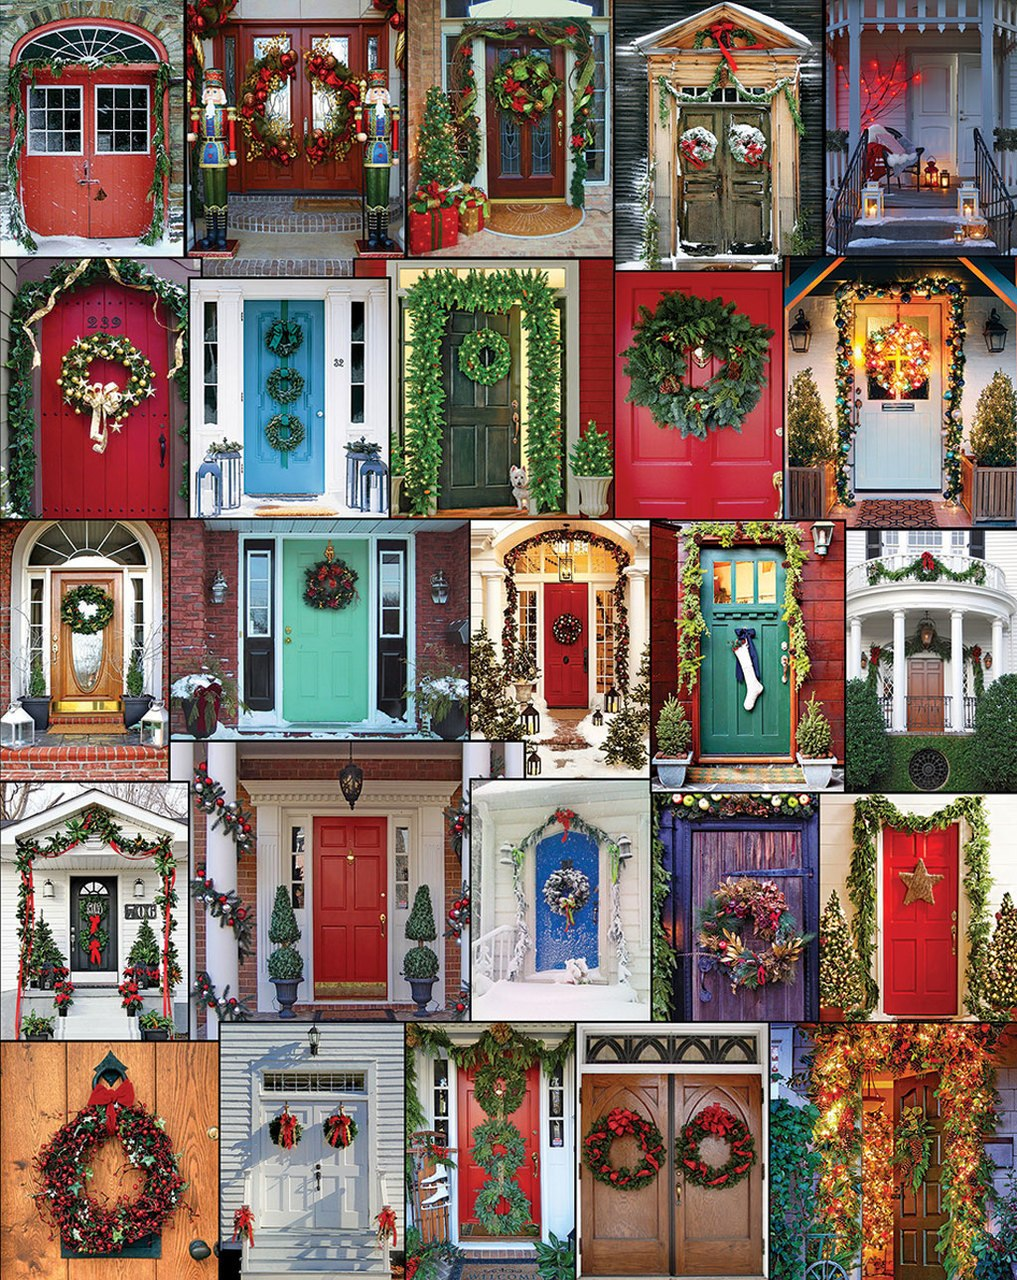 Holiday Doors - 1000pc Jigsaw Puzzle by White Mountain